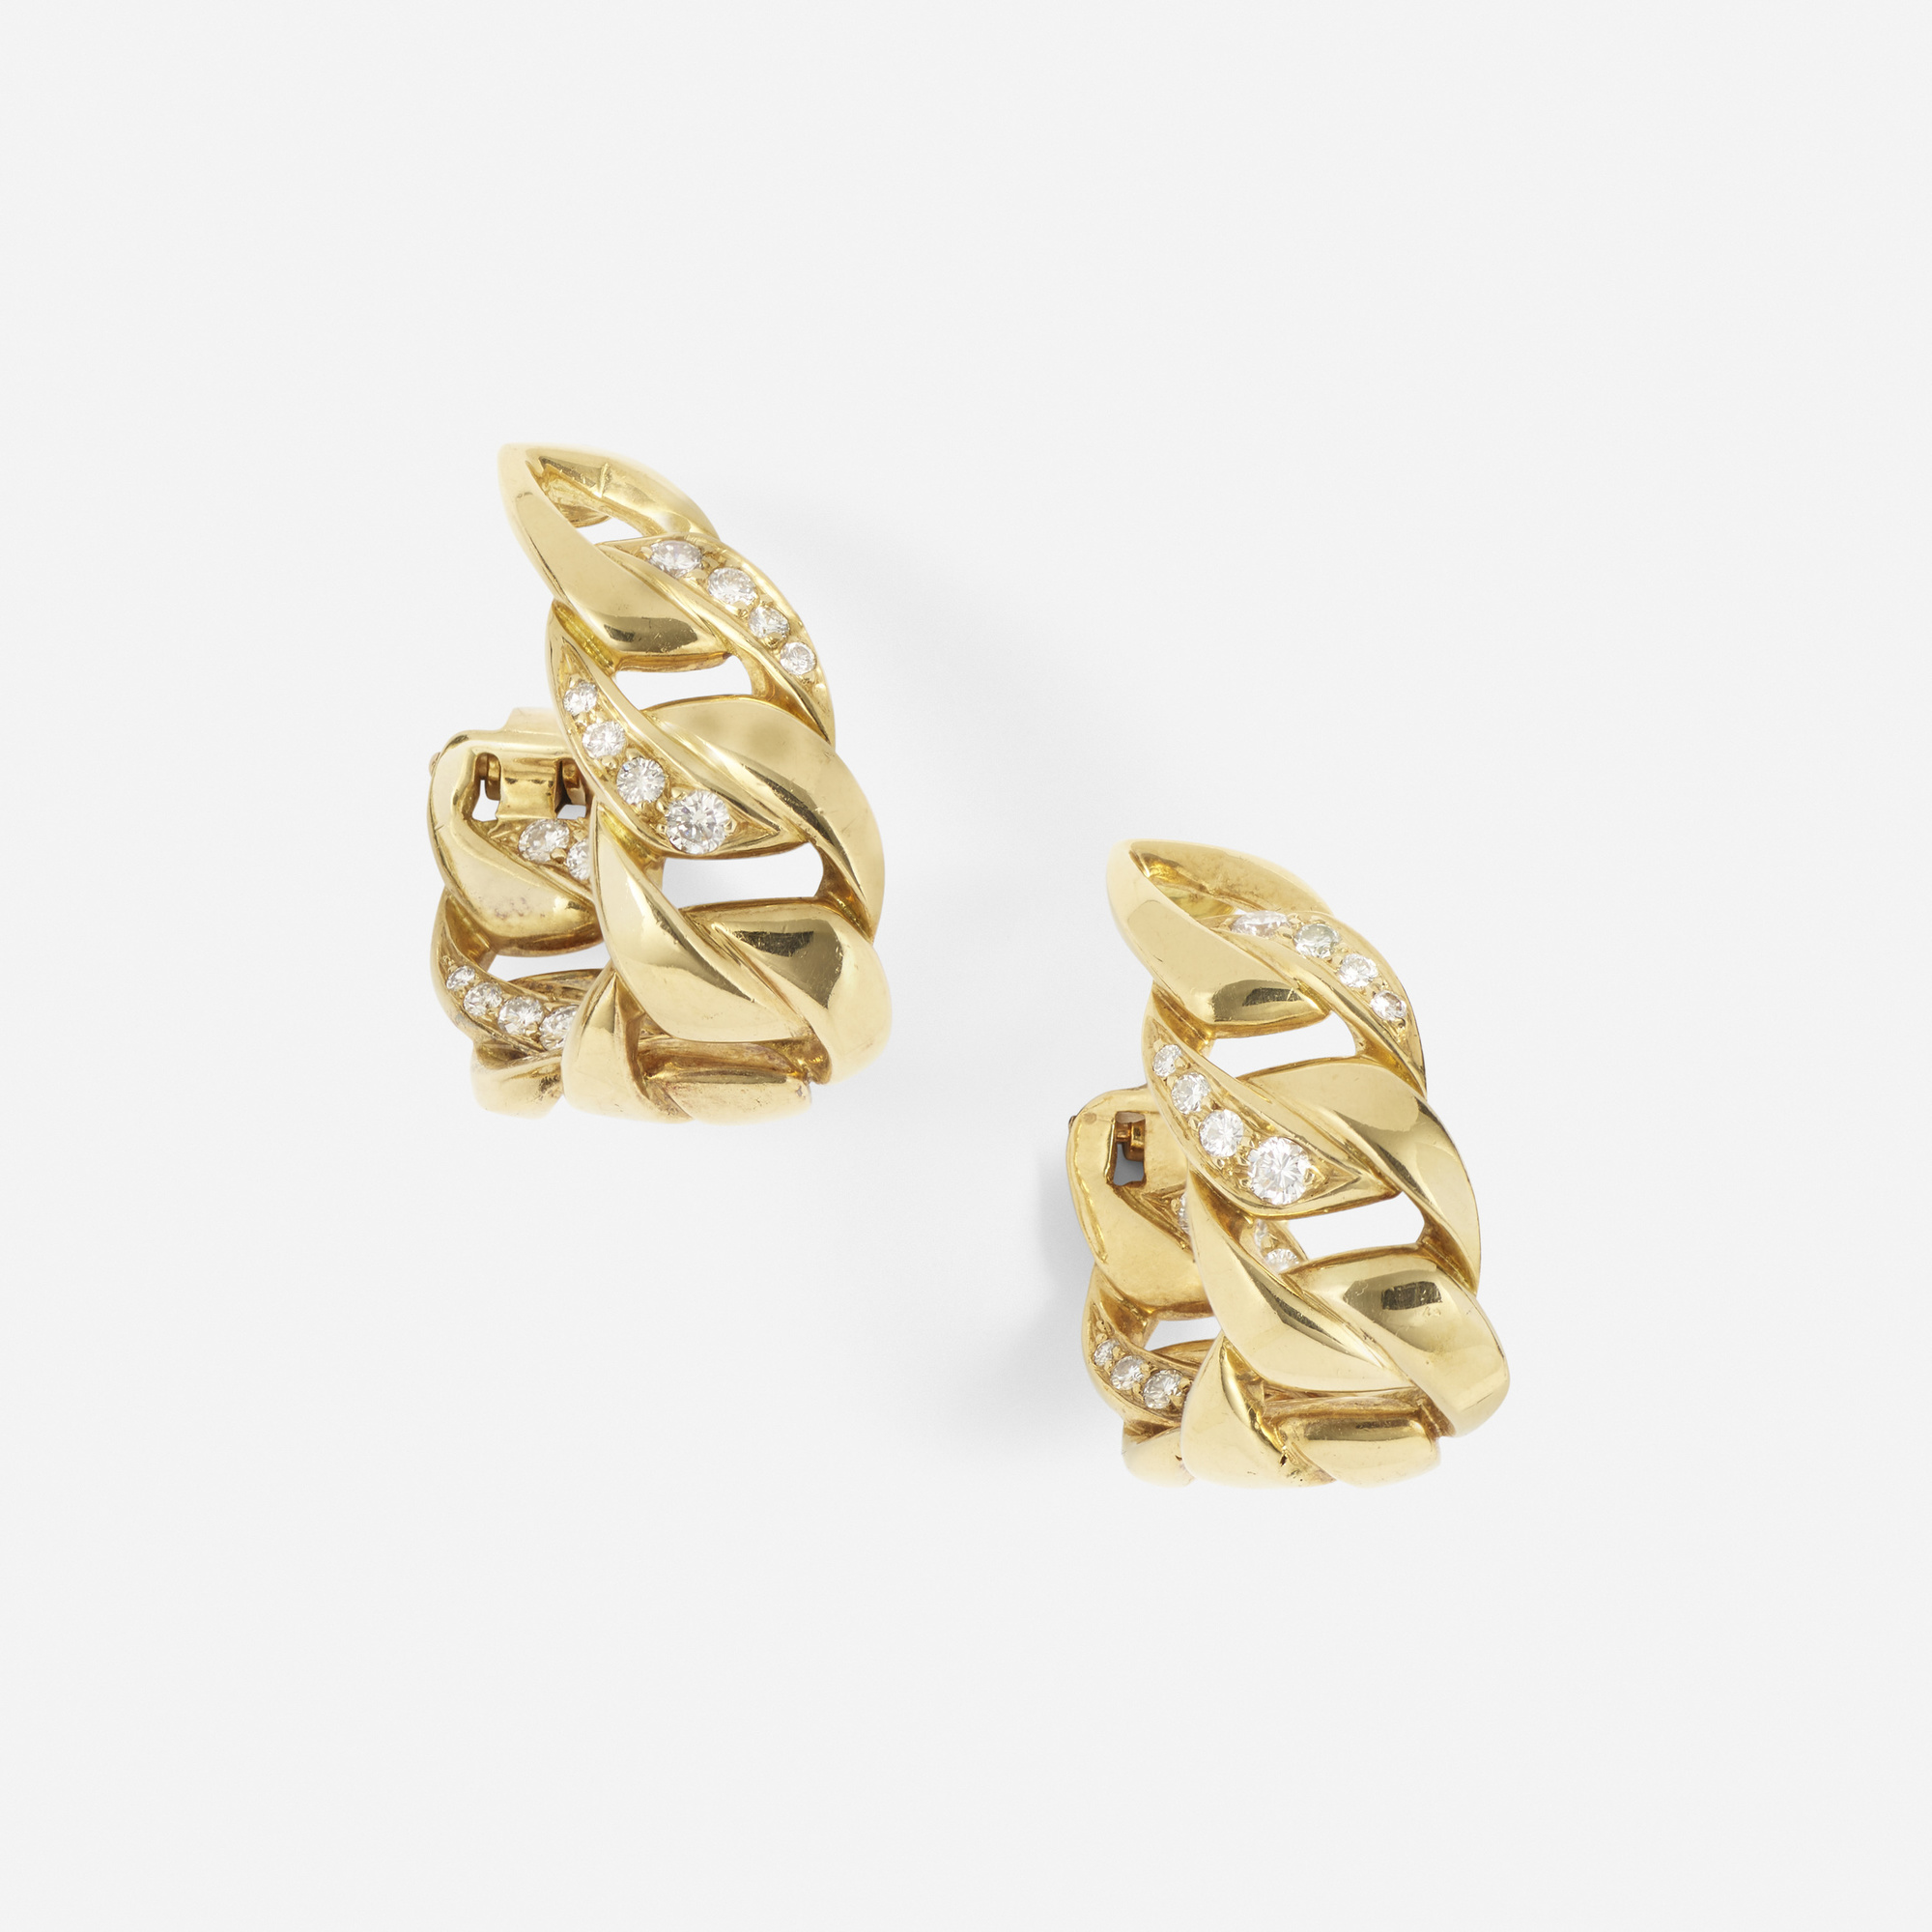 252: Cartier / A pair of gold and diamond earrings (1 of 2)